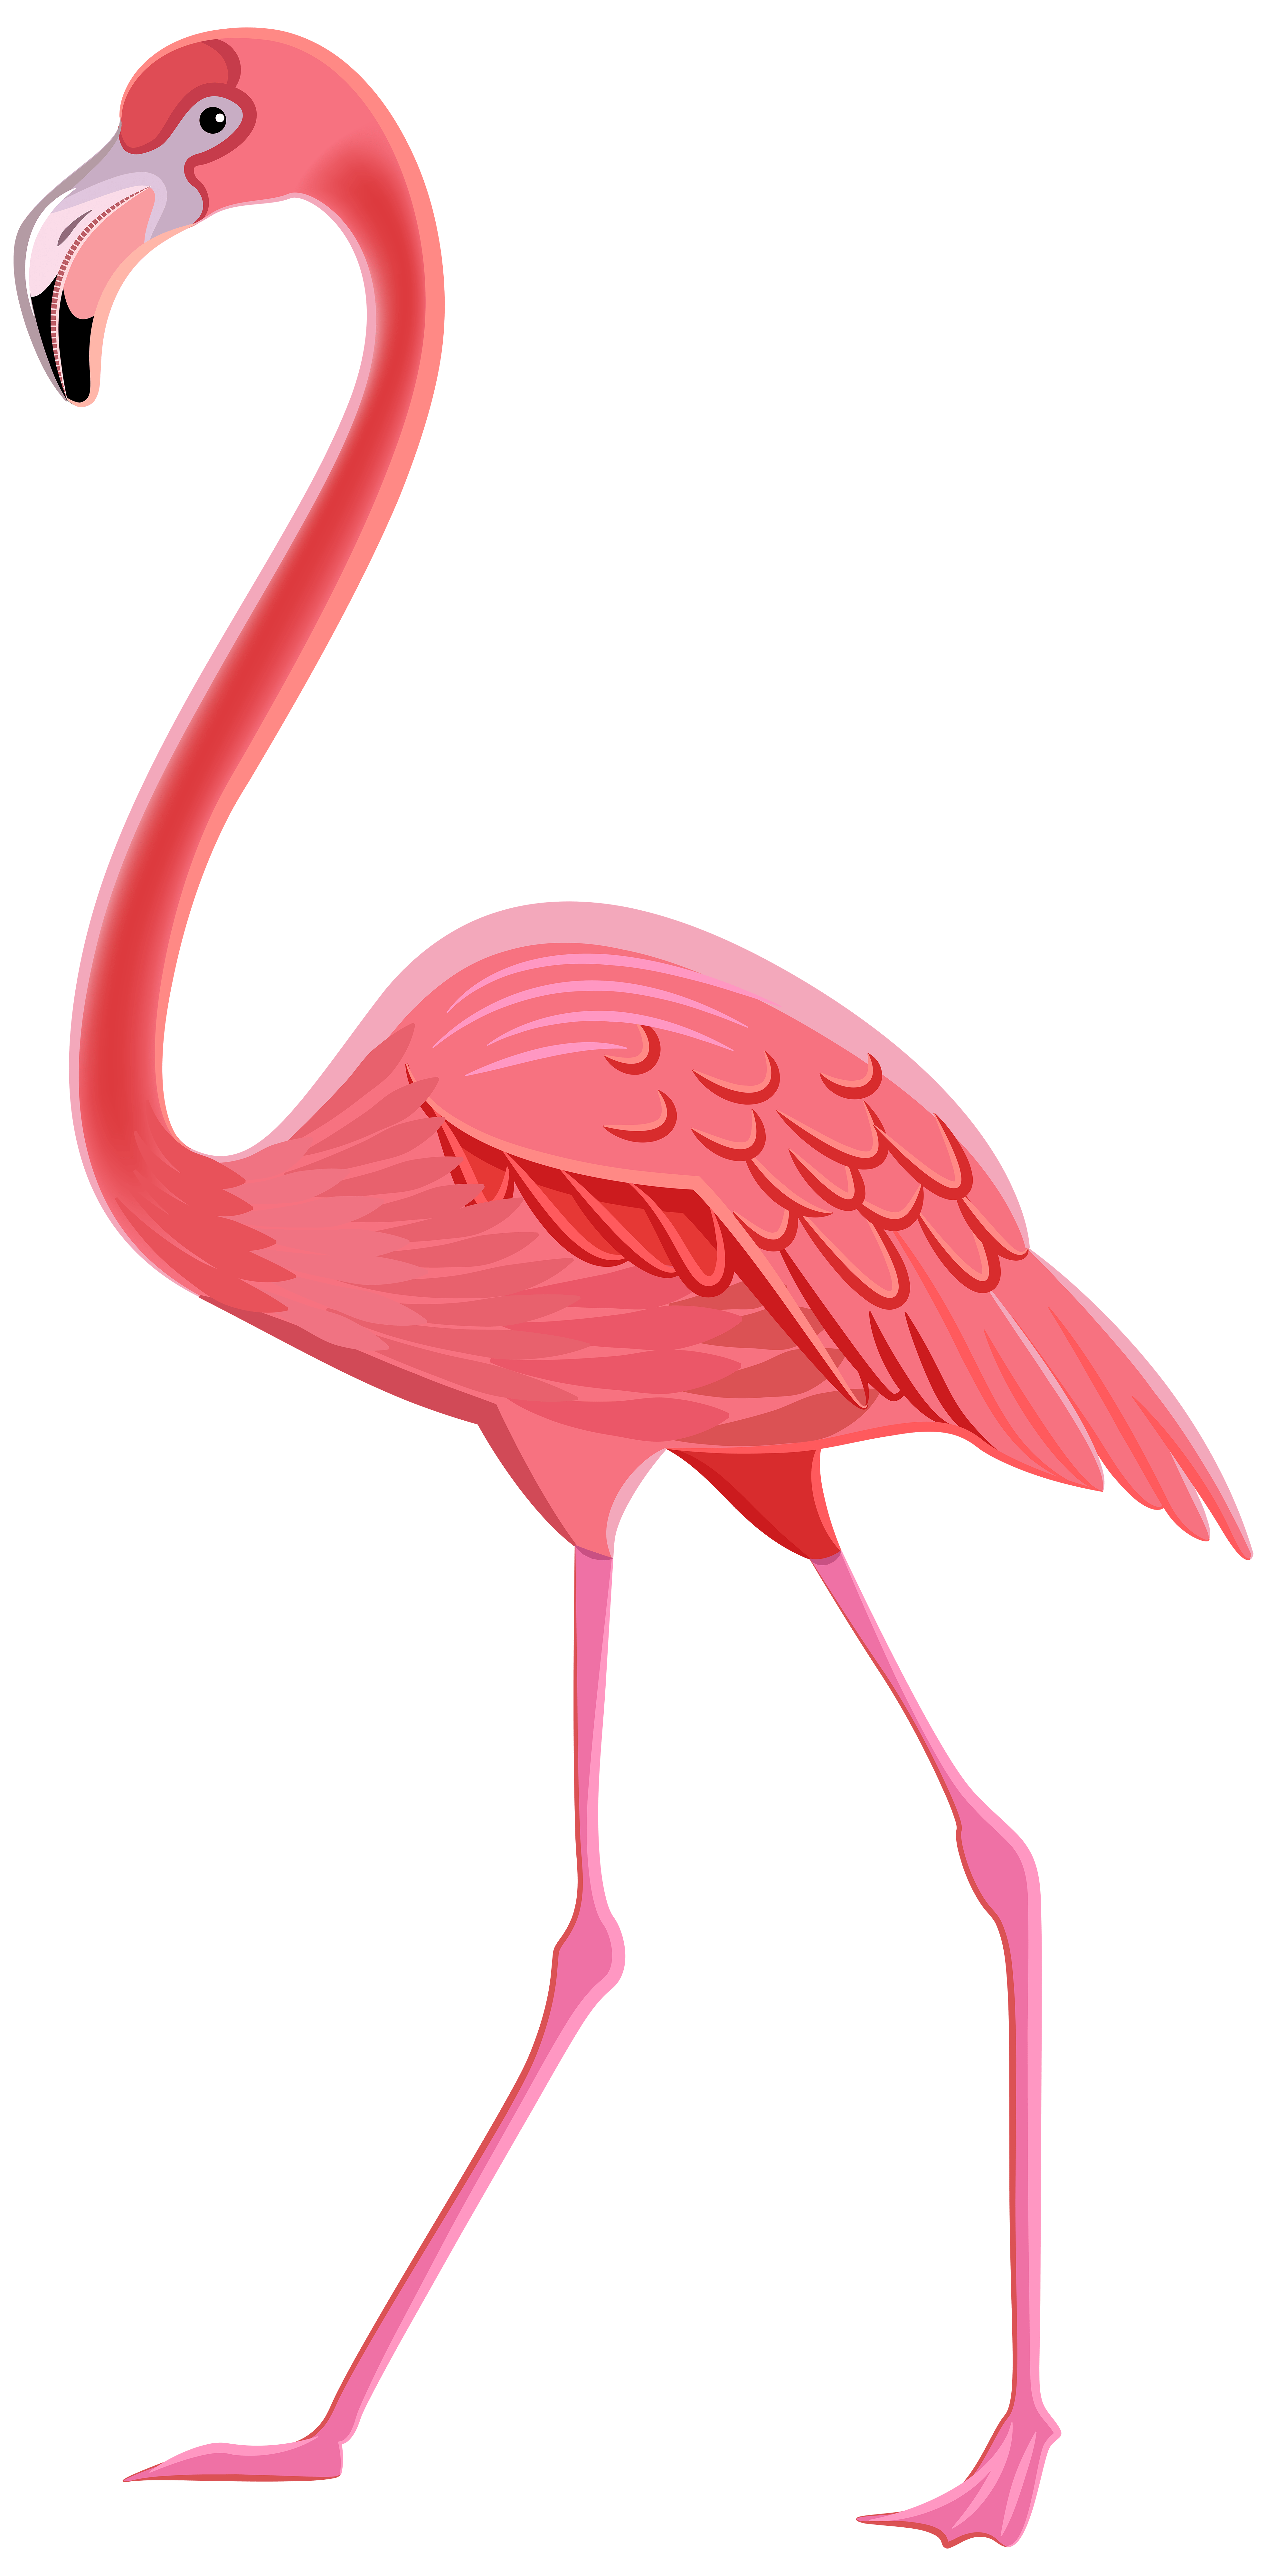 hight resolution of flamingo png transparent clip art image